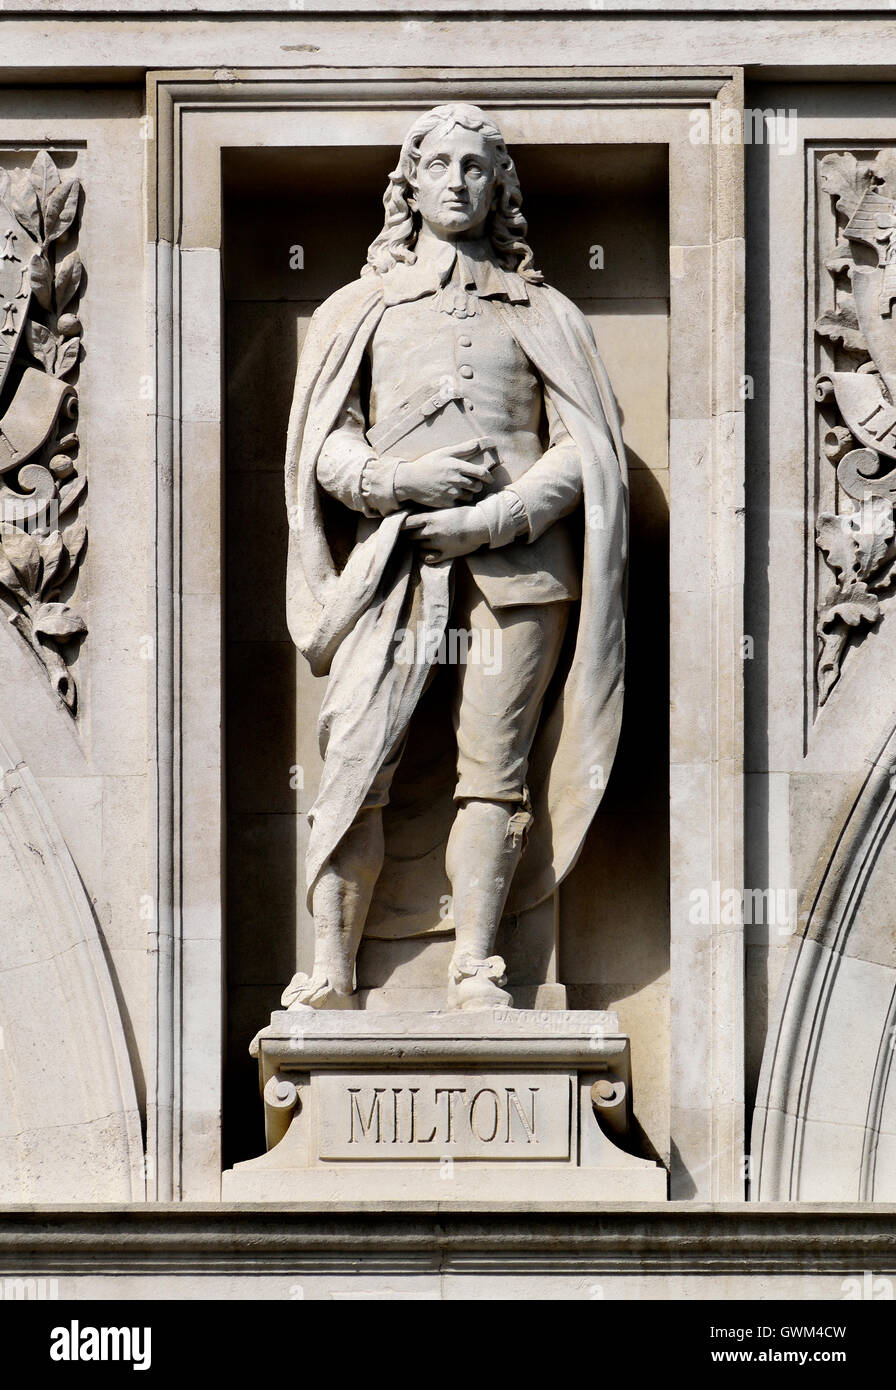 London, England, UK. City of London School, Victoria Embankment. Statue on facade: Jon Milton (poet) - Stock Image